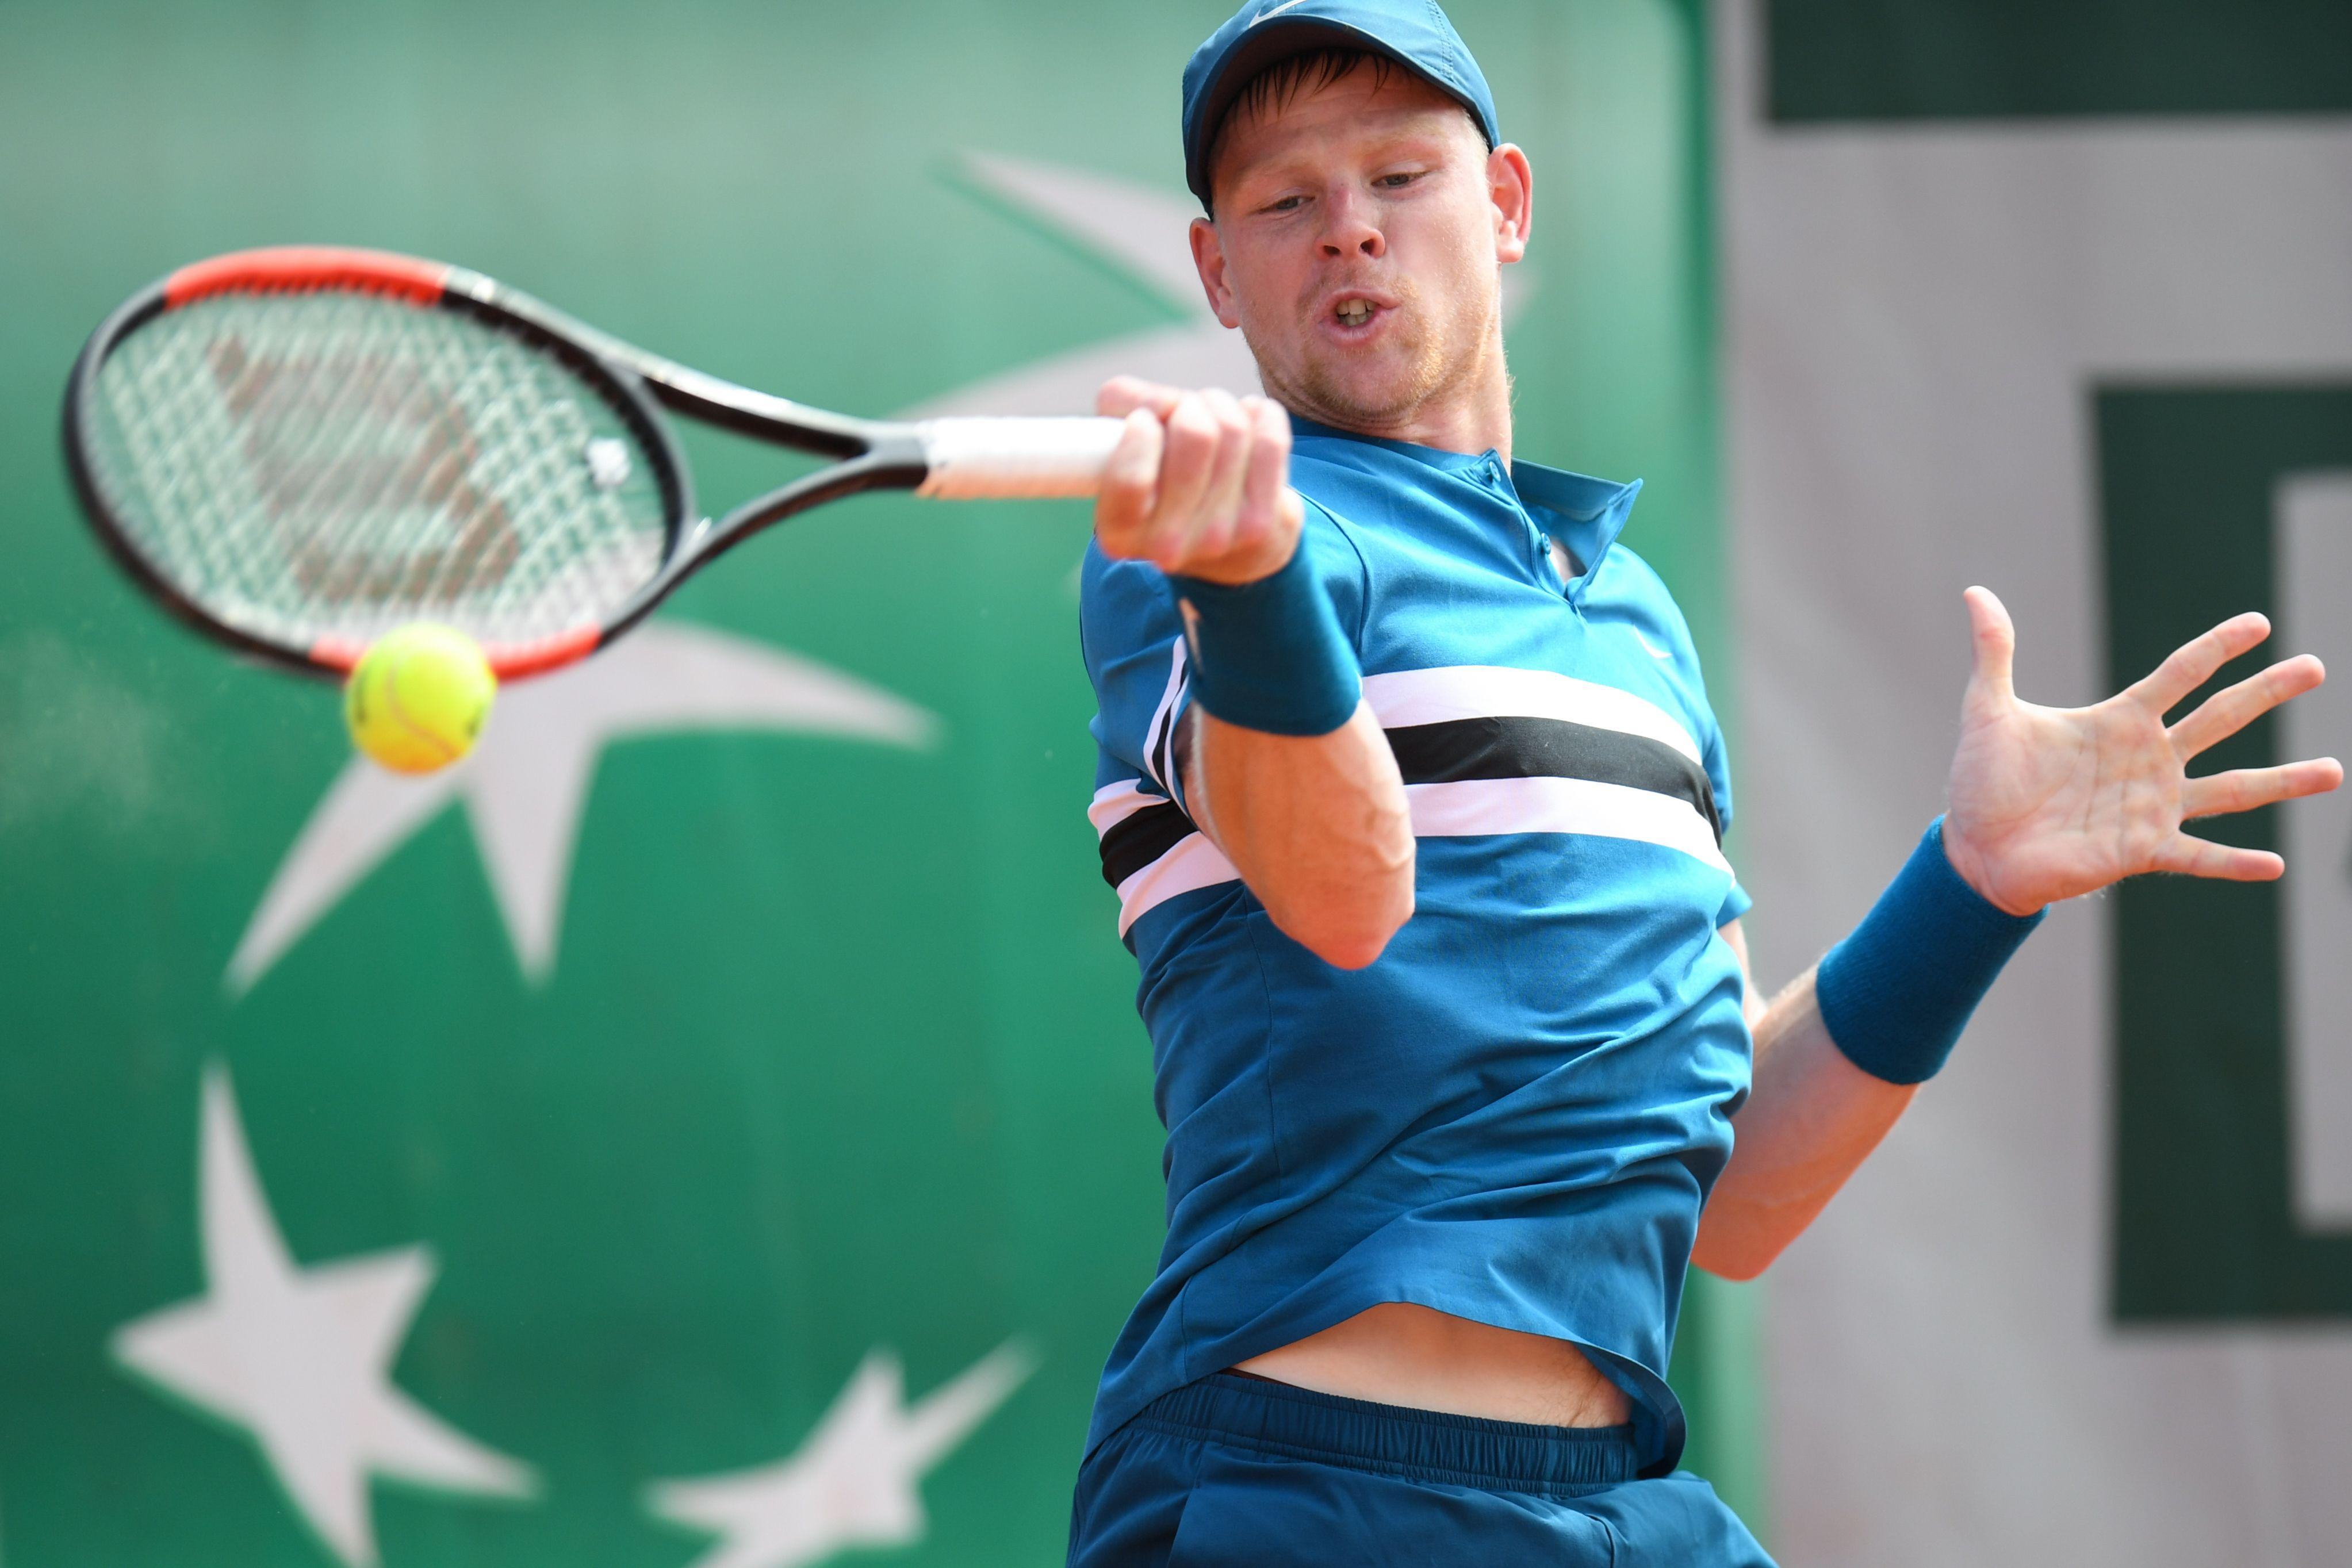 French Open 16th seed Kyle Edmund overpowered his Oz rival despite some second-set blips on his serve